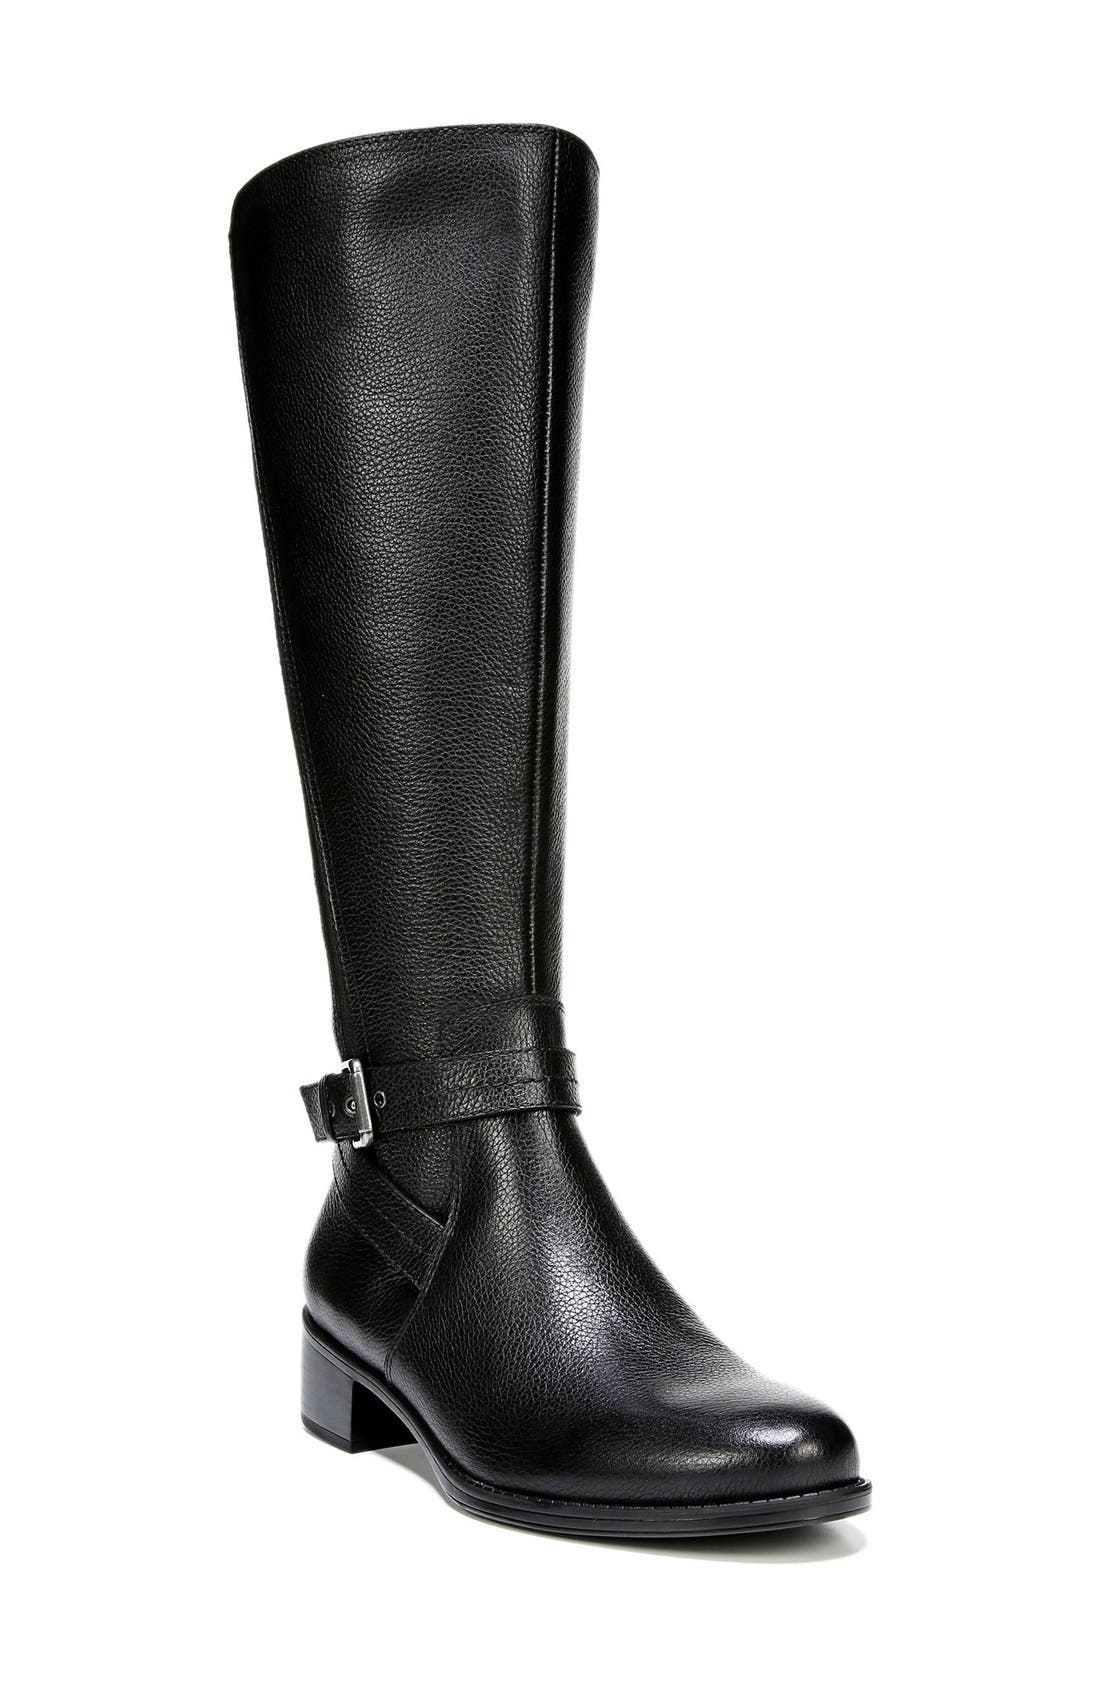 Alternate Image 1 Selected - Naturalizer 'Wynnie' Riding Boot (Women) (Wide Calf)